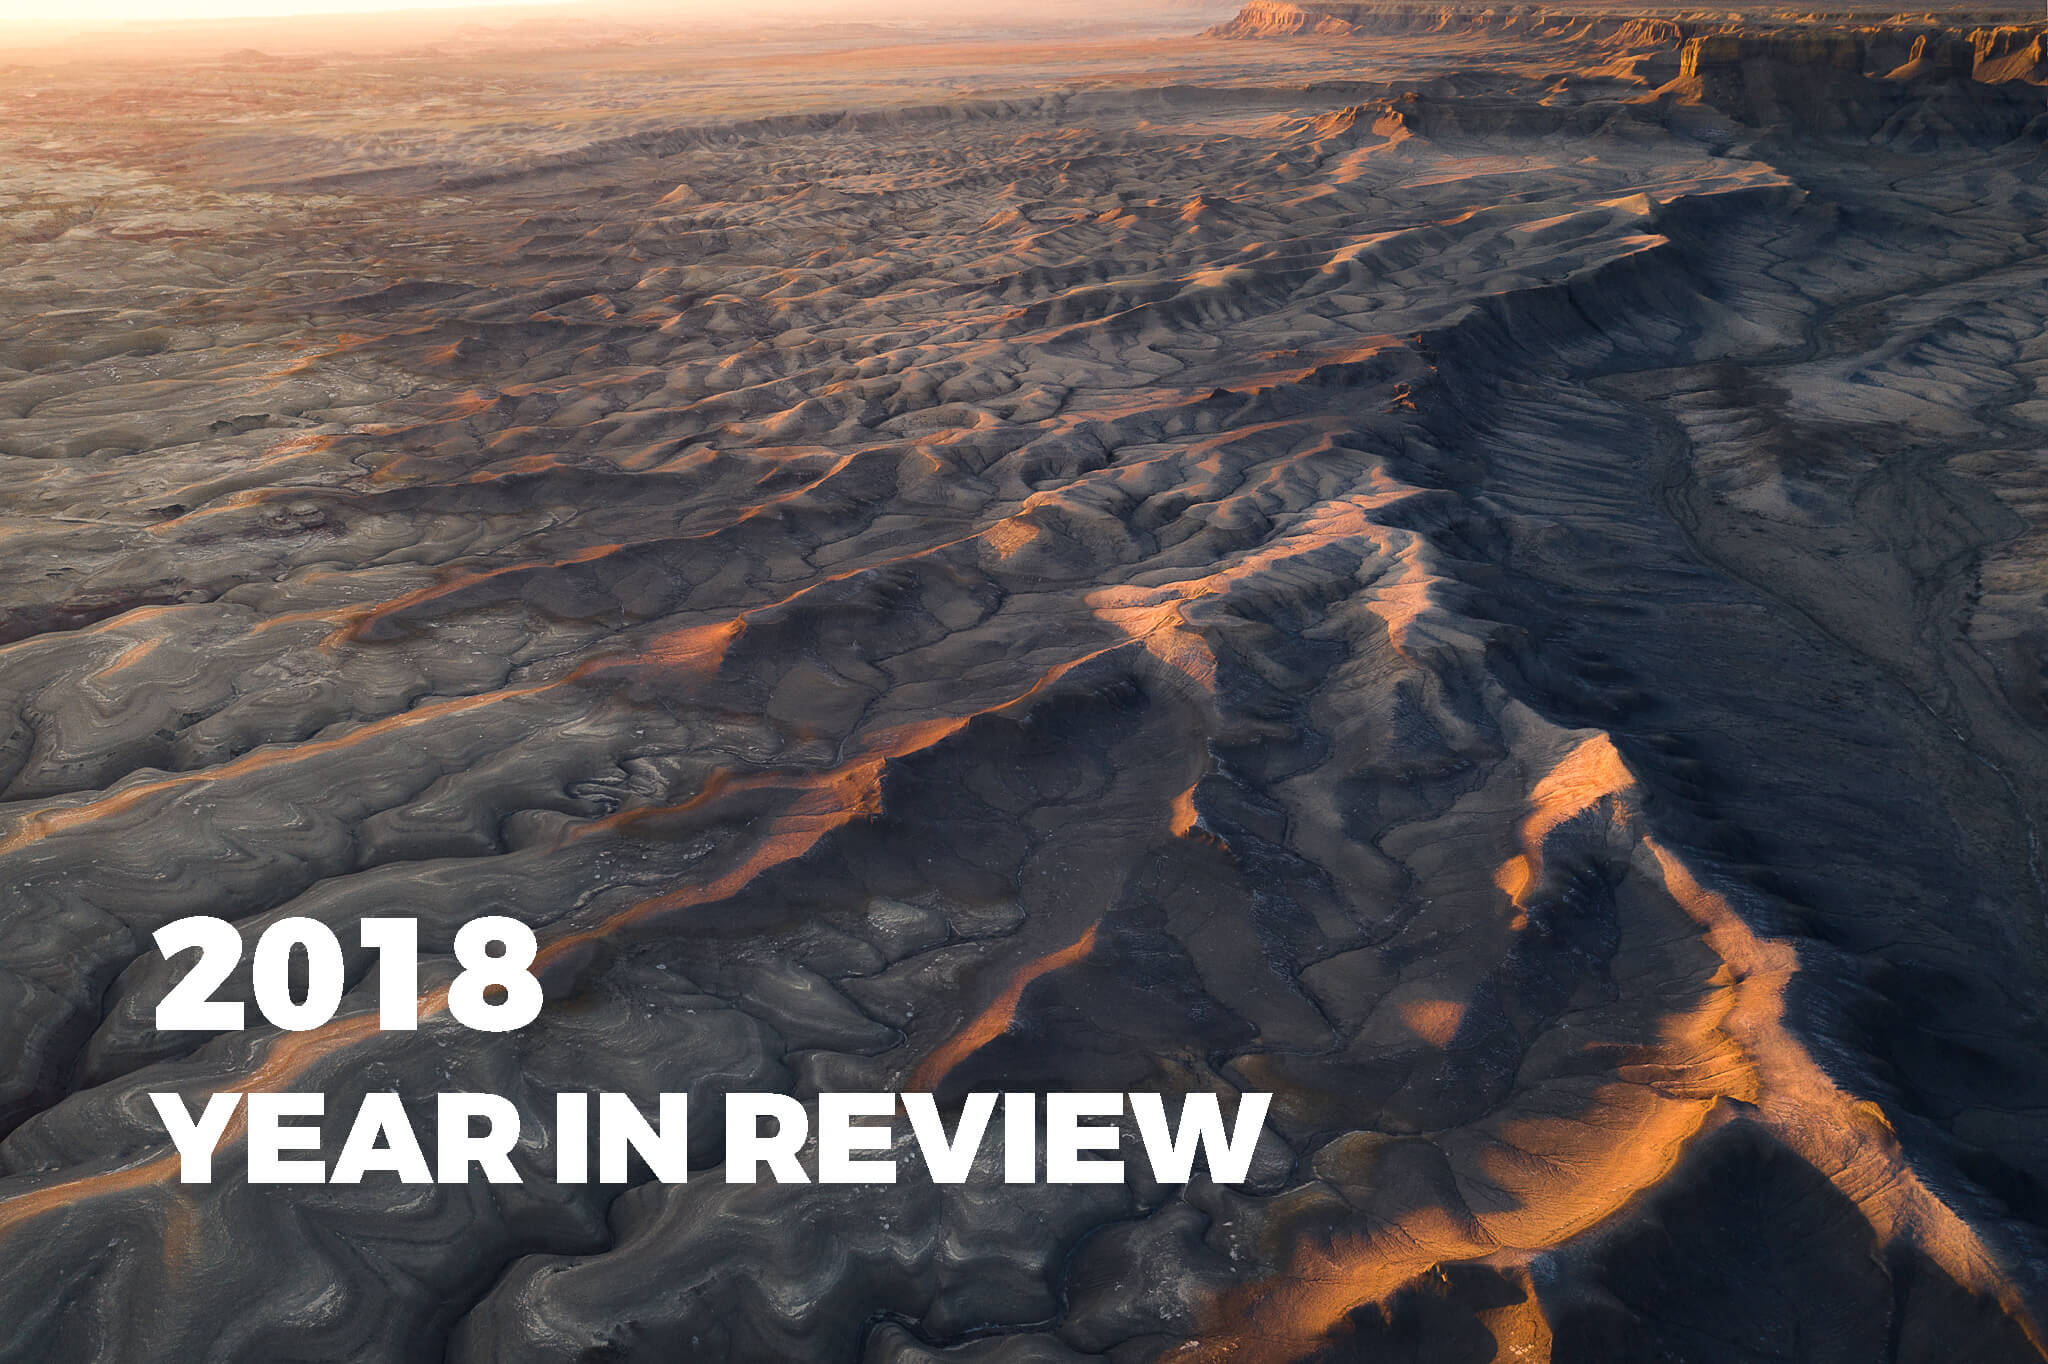 2018 Year in Review by Marco Grassi Photography